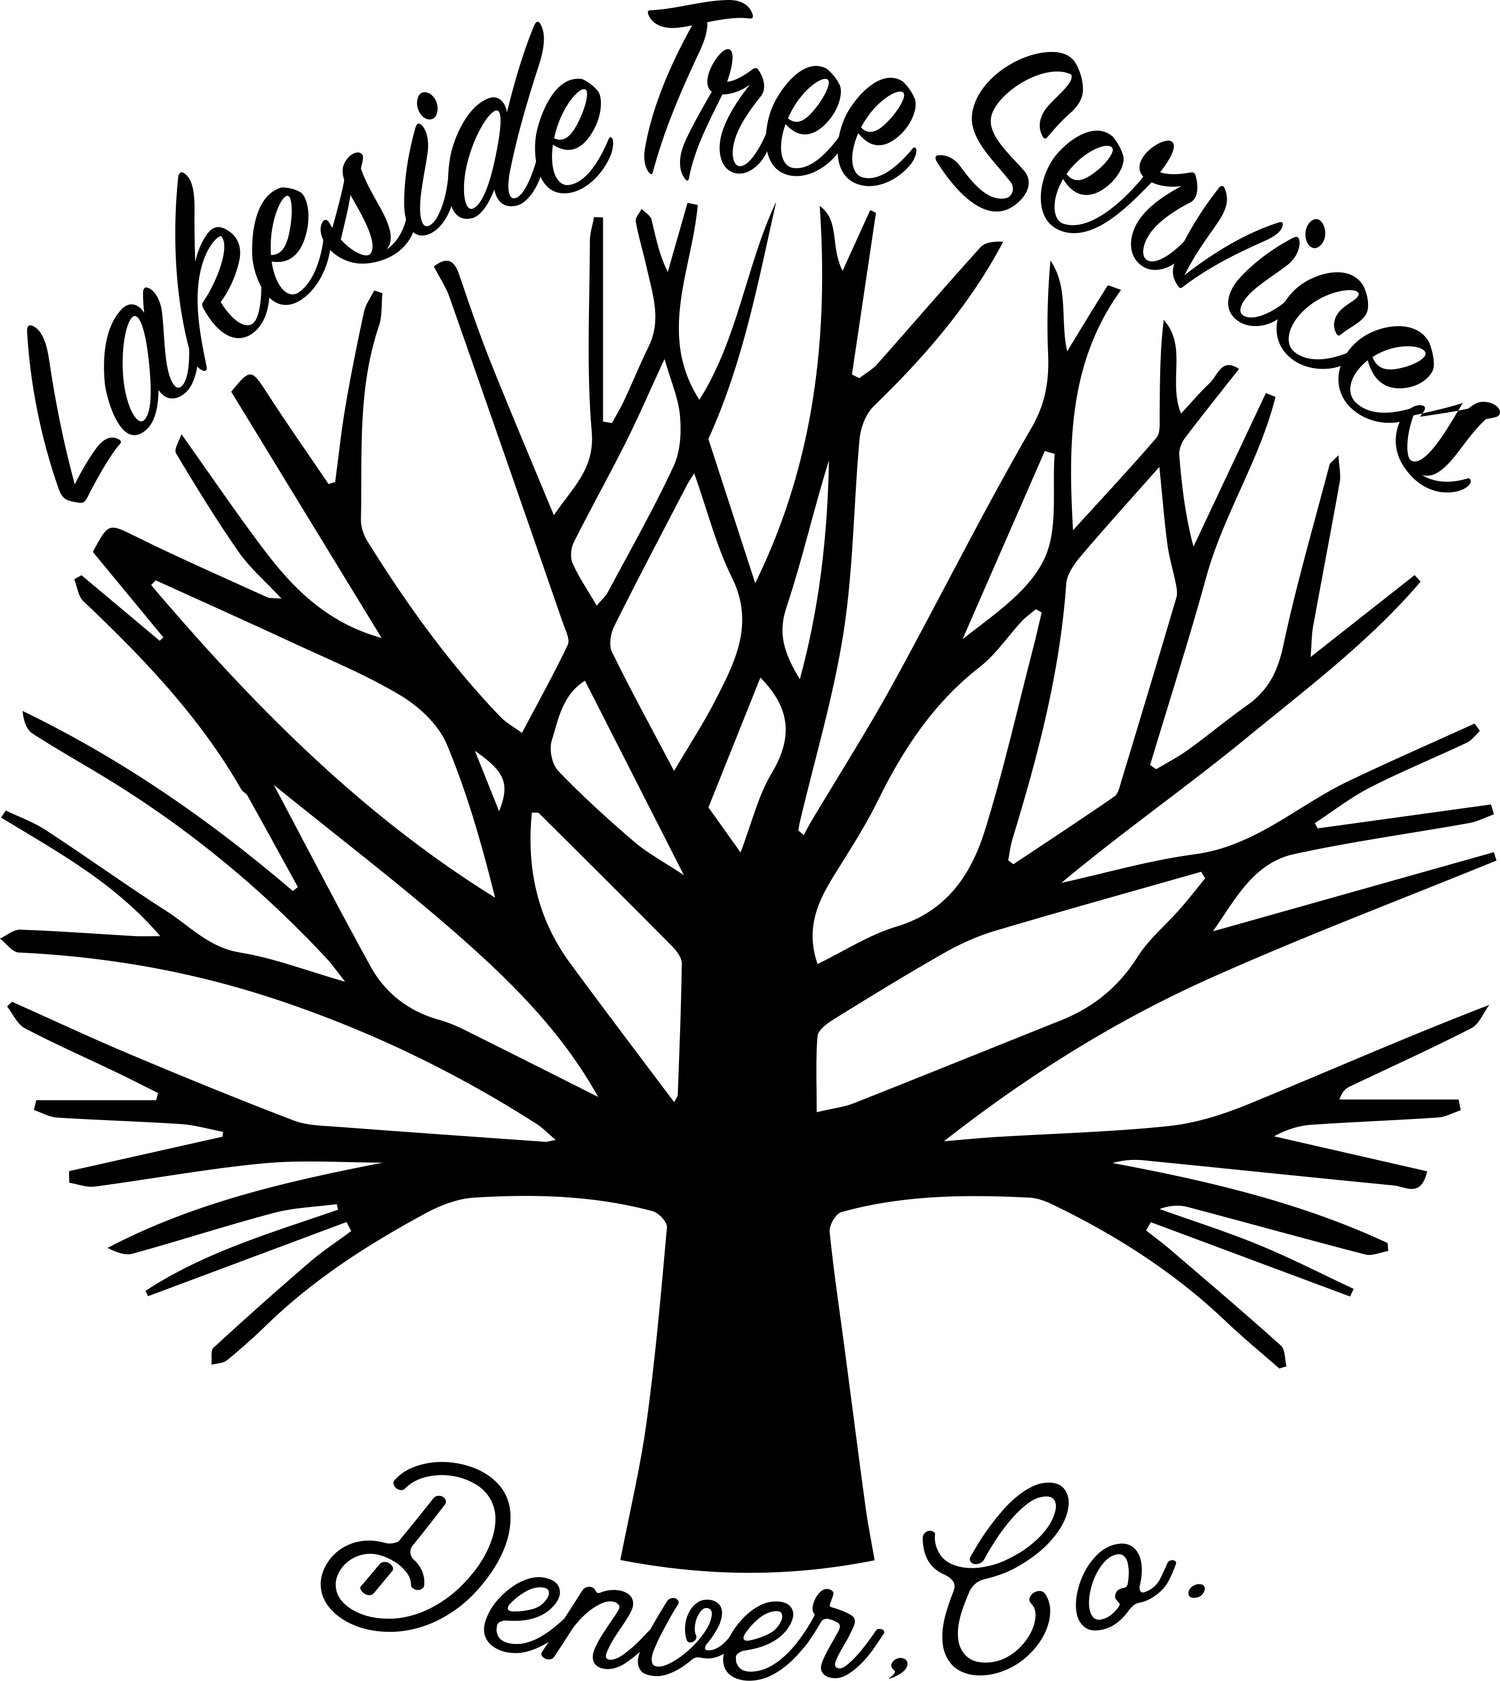 Lakeside Tree Services